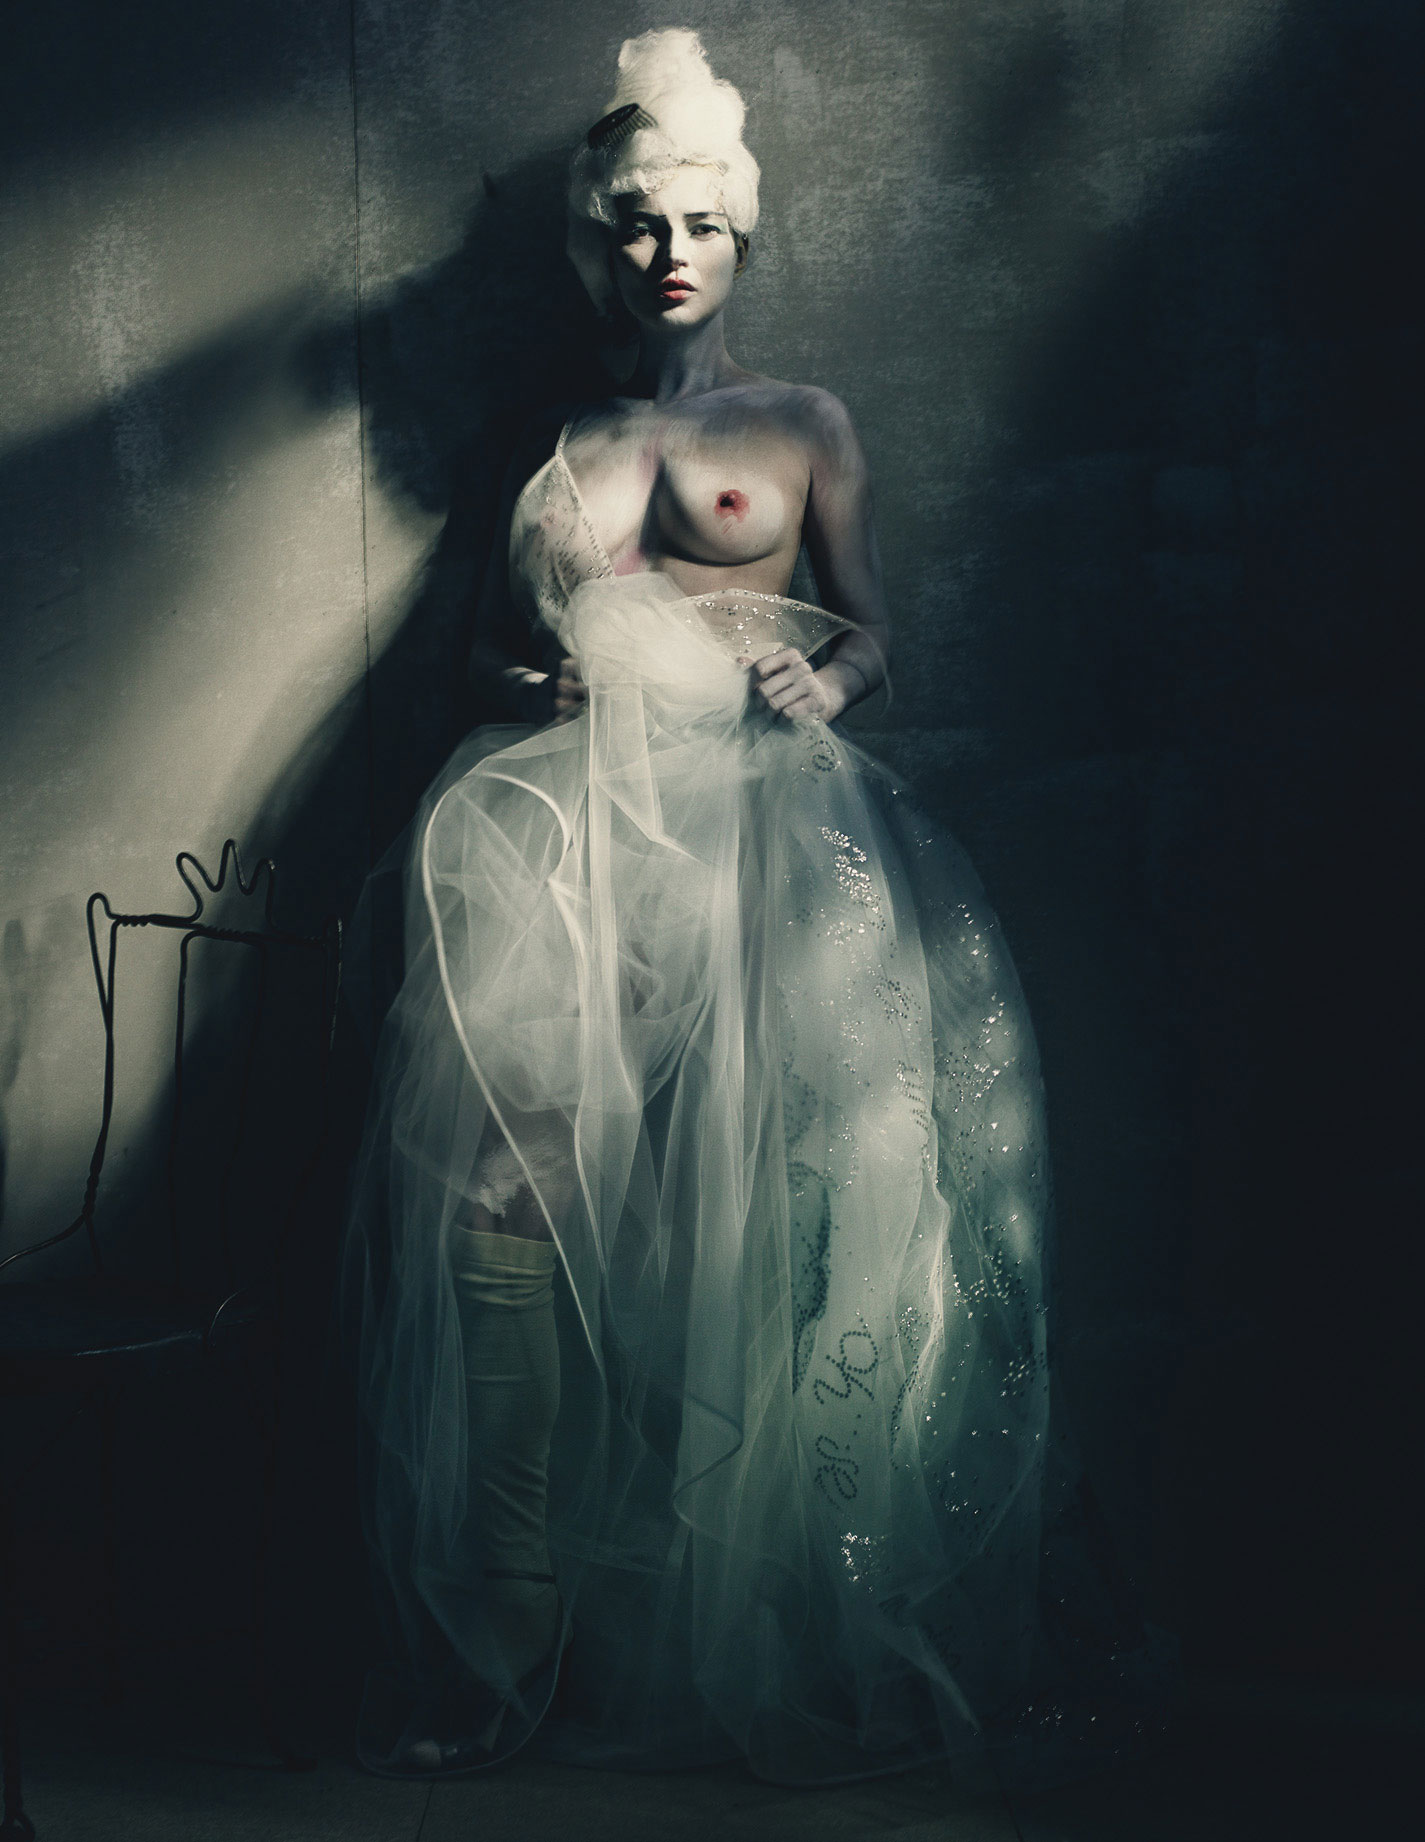 kate-moss-by-paolo-roversi-for-w-magazine-april-2015